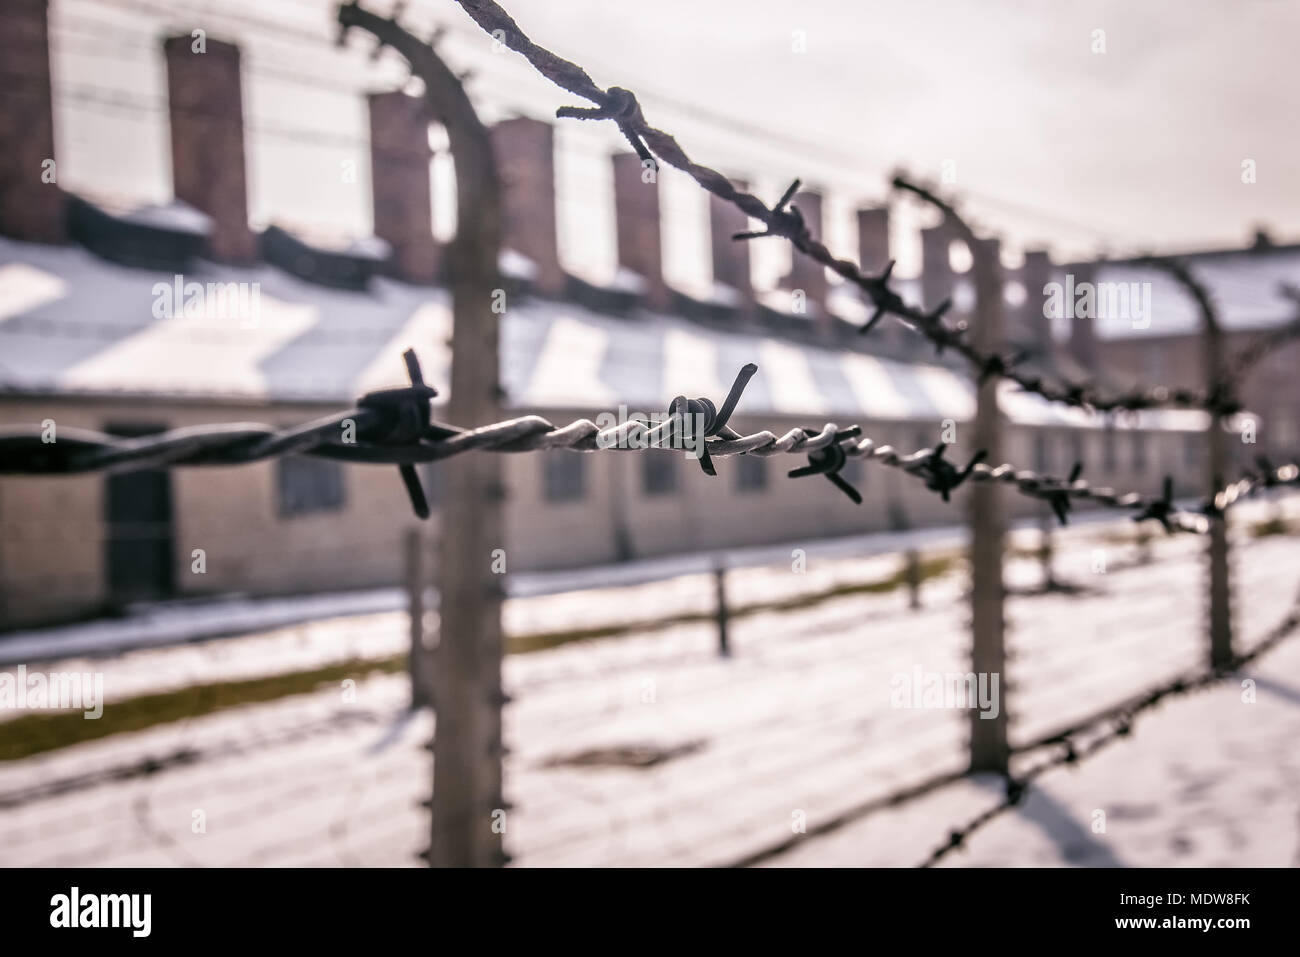 Prison Barbed Wire Fence Architecture Stock Photos & Prison Barbed ...